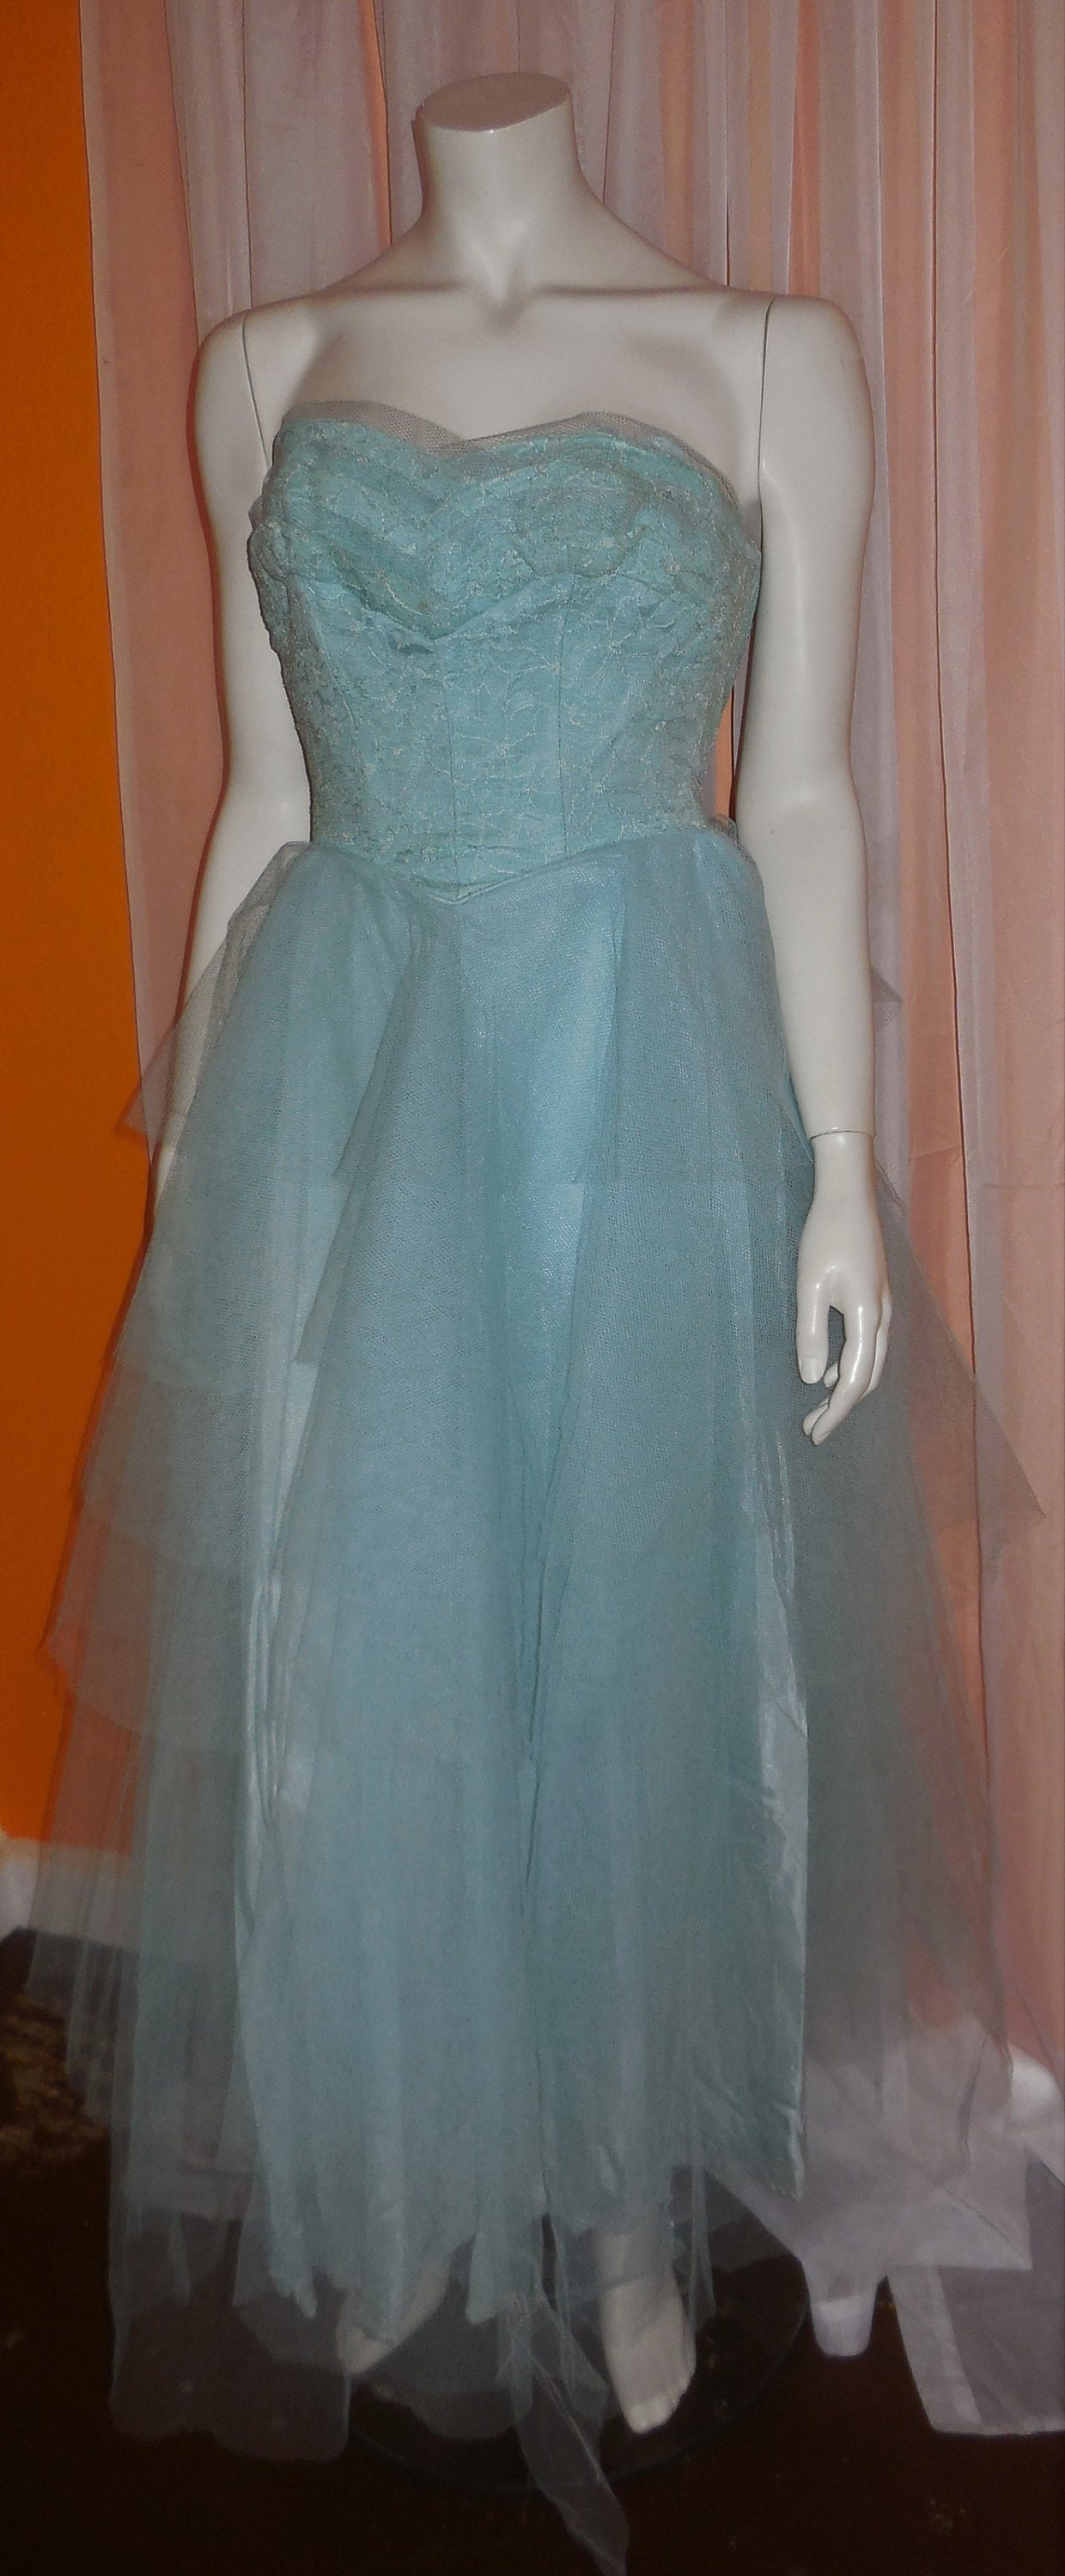 305c7a18286 Vintage 1950s Prom Dress Long Light Blue Net Gown Strapless Lace Sweetheart  Bust USA Rockabilly XS chest to 32 in. as is